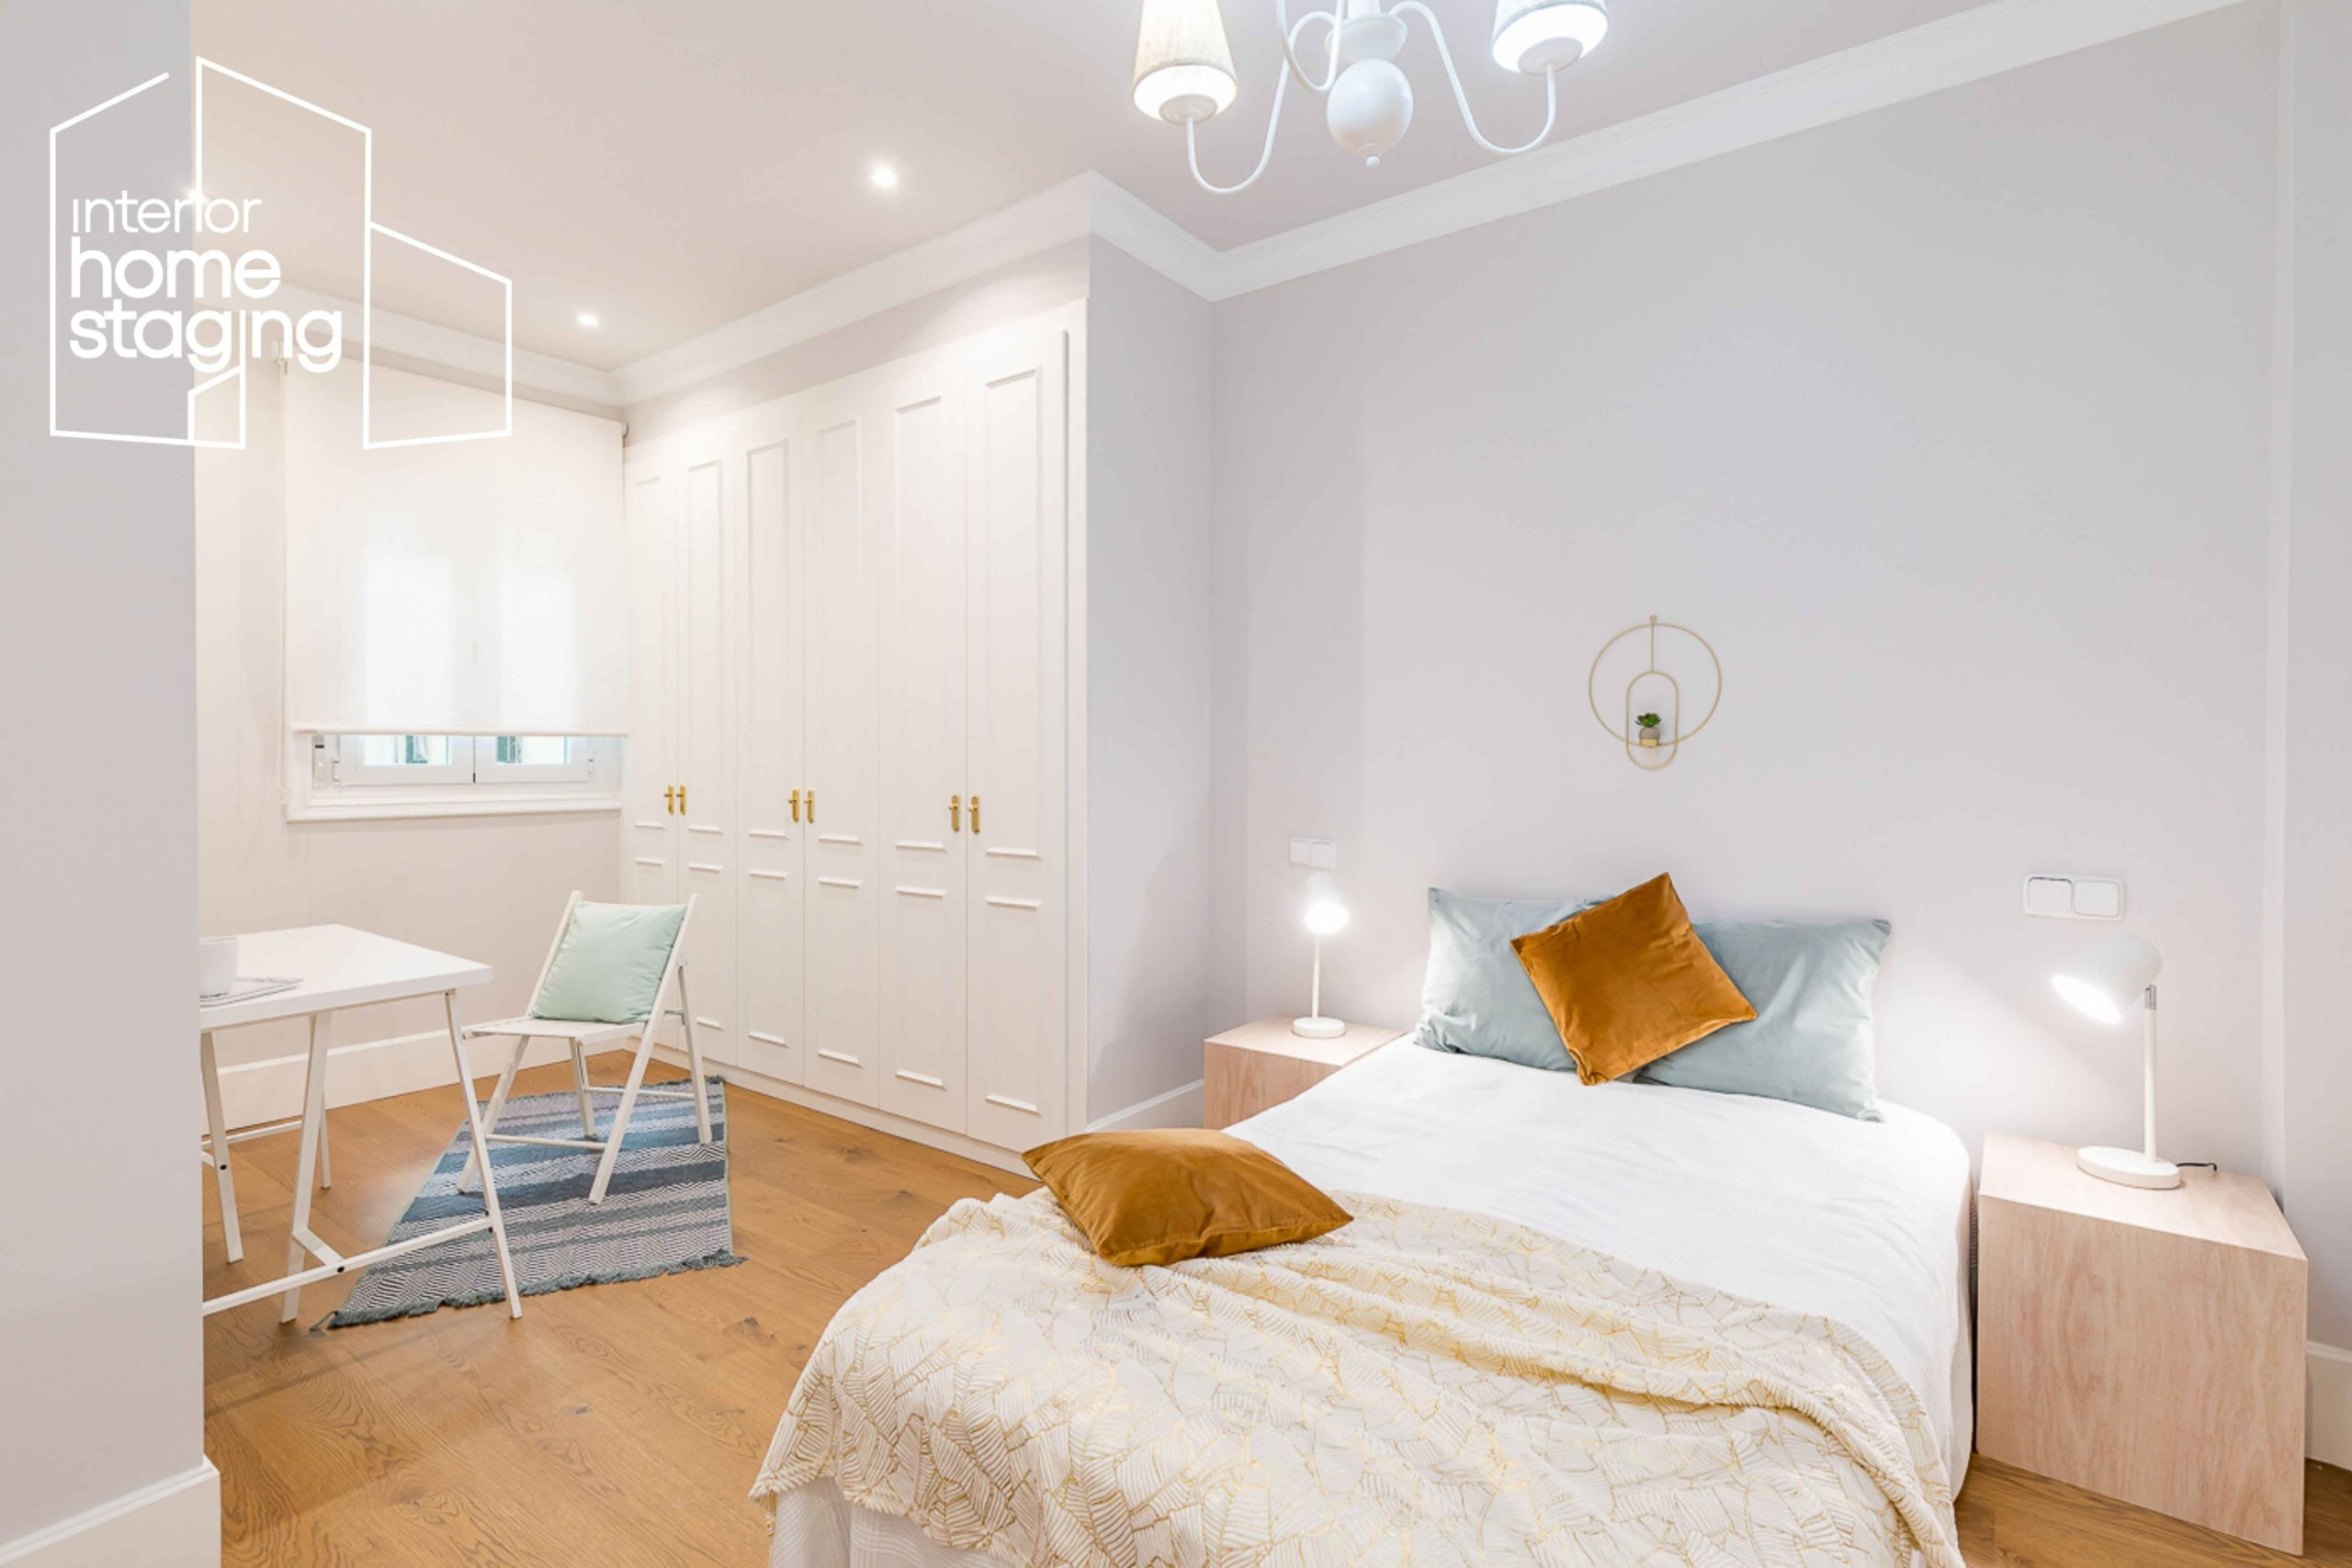 Home Staging dormitorio casa en venta Goya Madrid